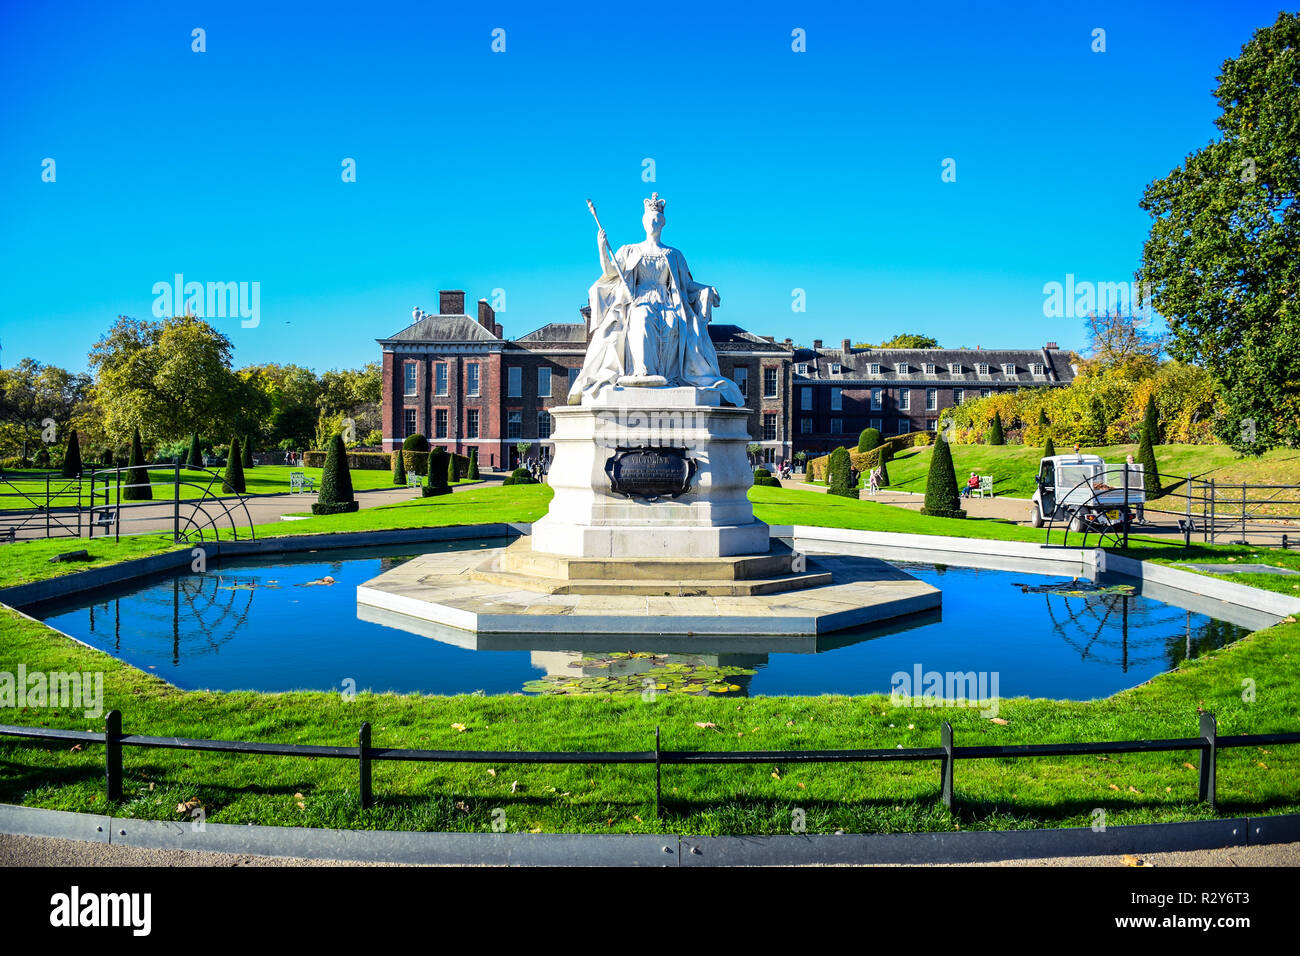 The Great Queen Victoria statue in front of Kensington Palace in the Royal Borough of Kensington and Chelsea in London, England, United Kingdom - Stock Image